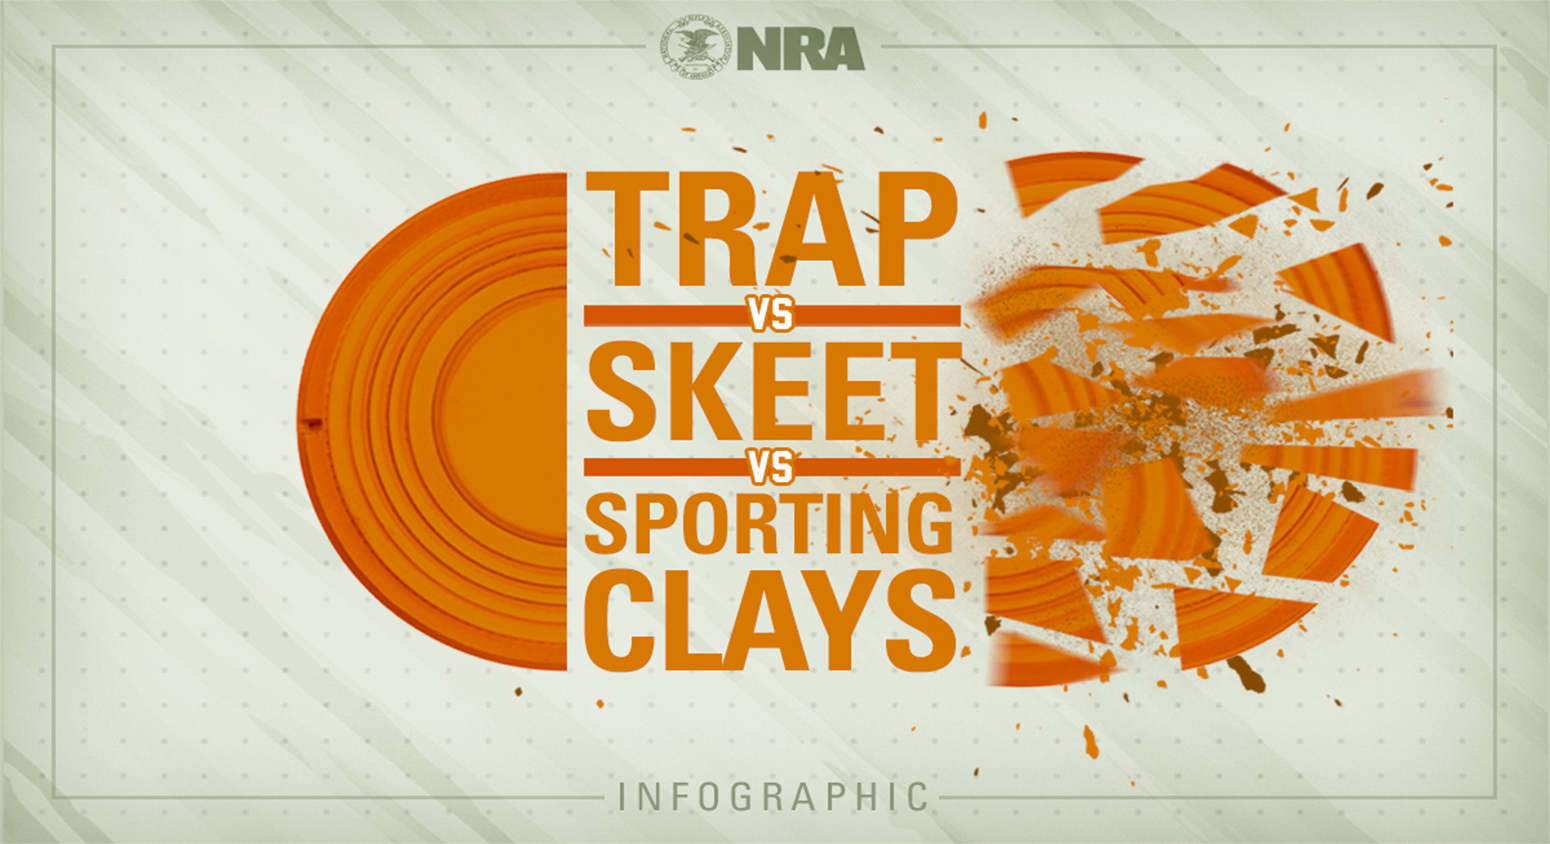 Infographic: Trap vs. Skeet vs. Sporting Clays